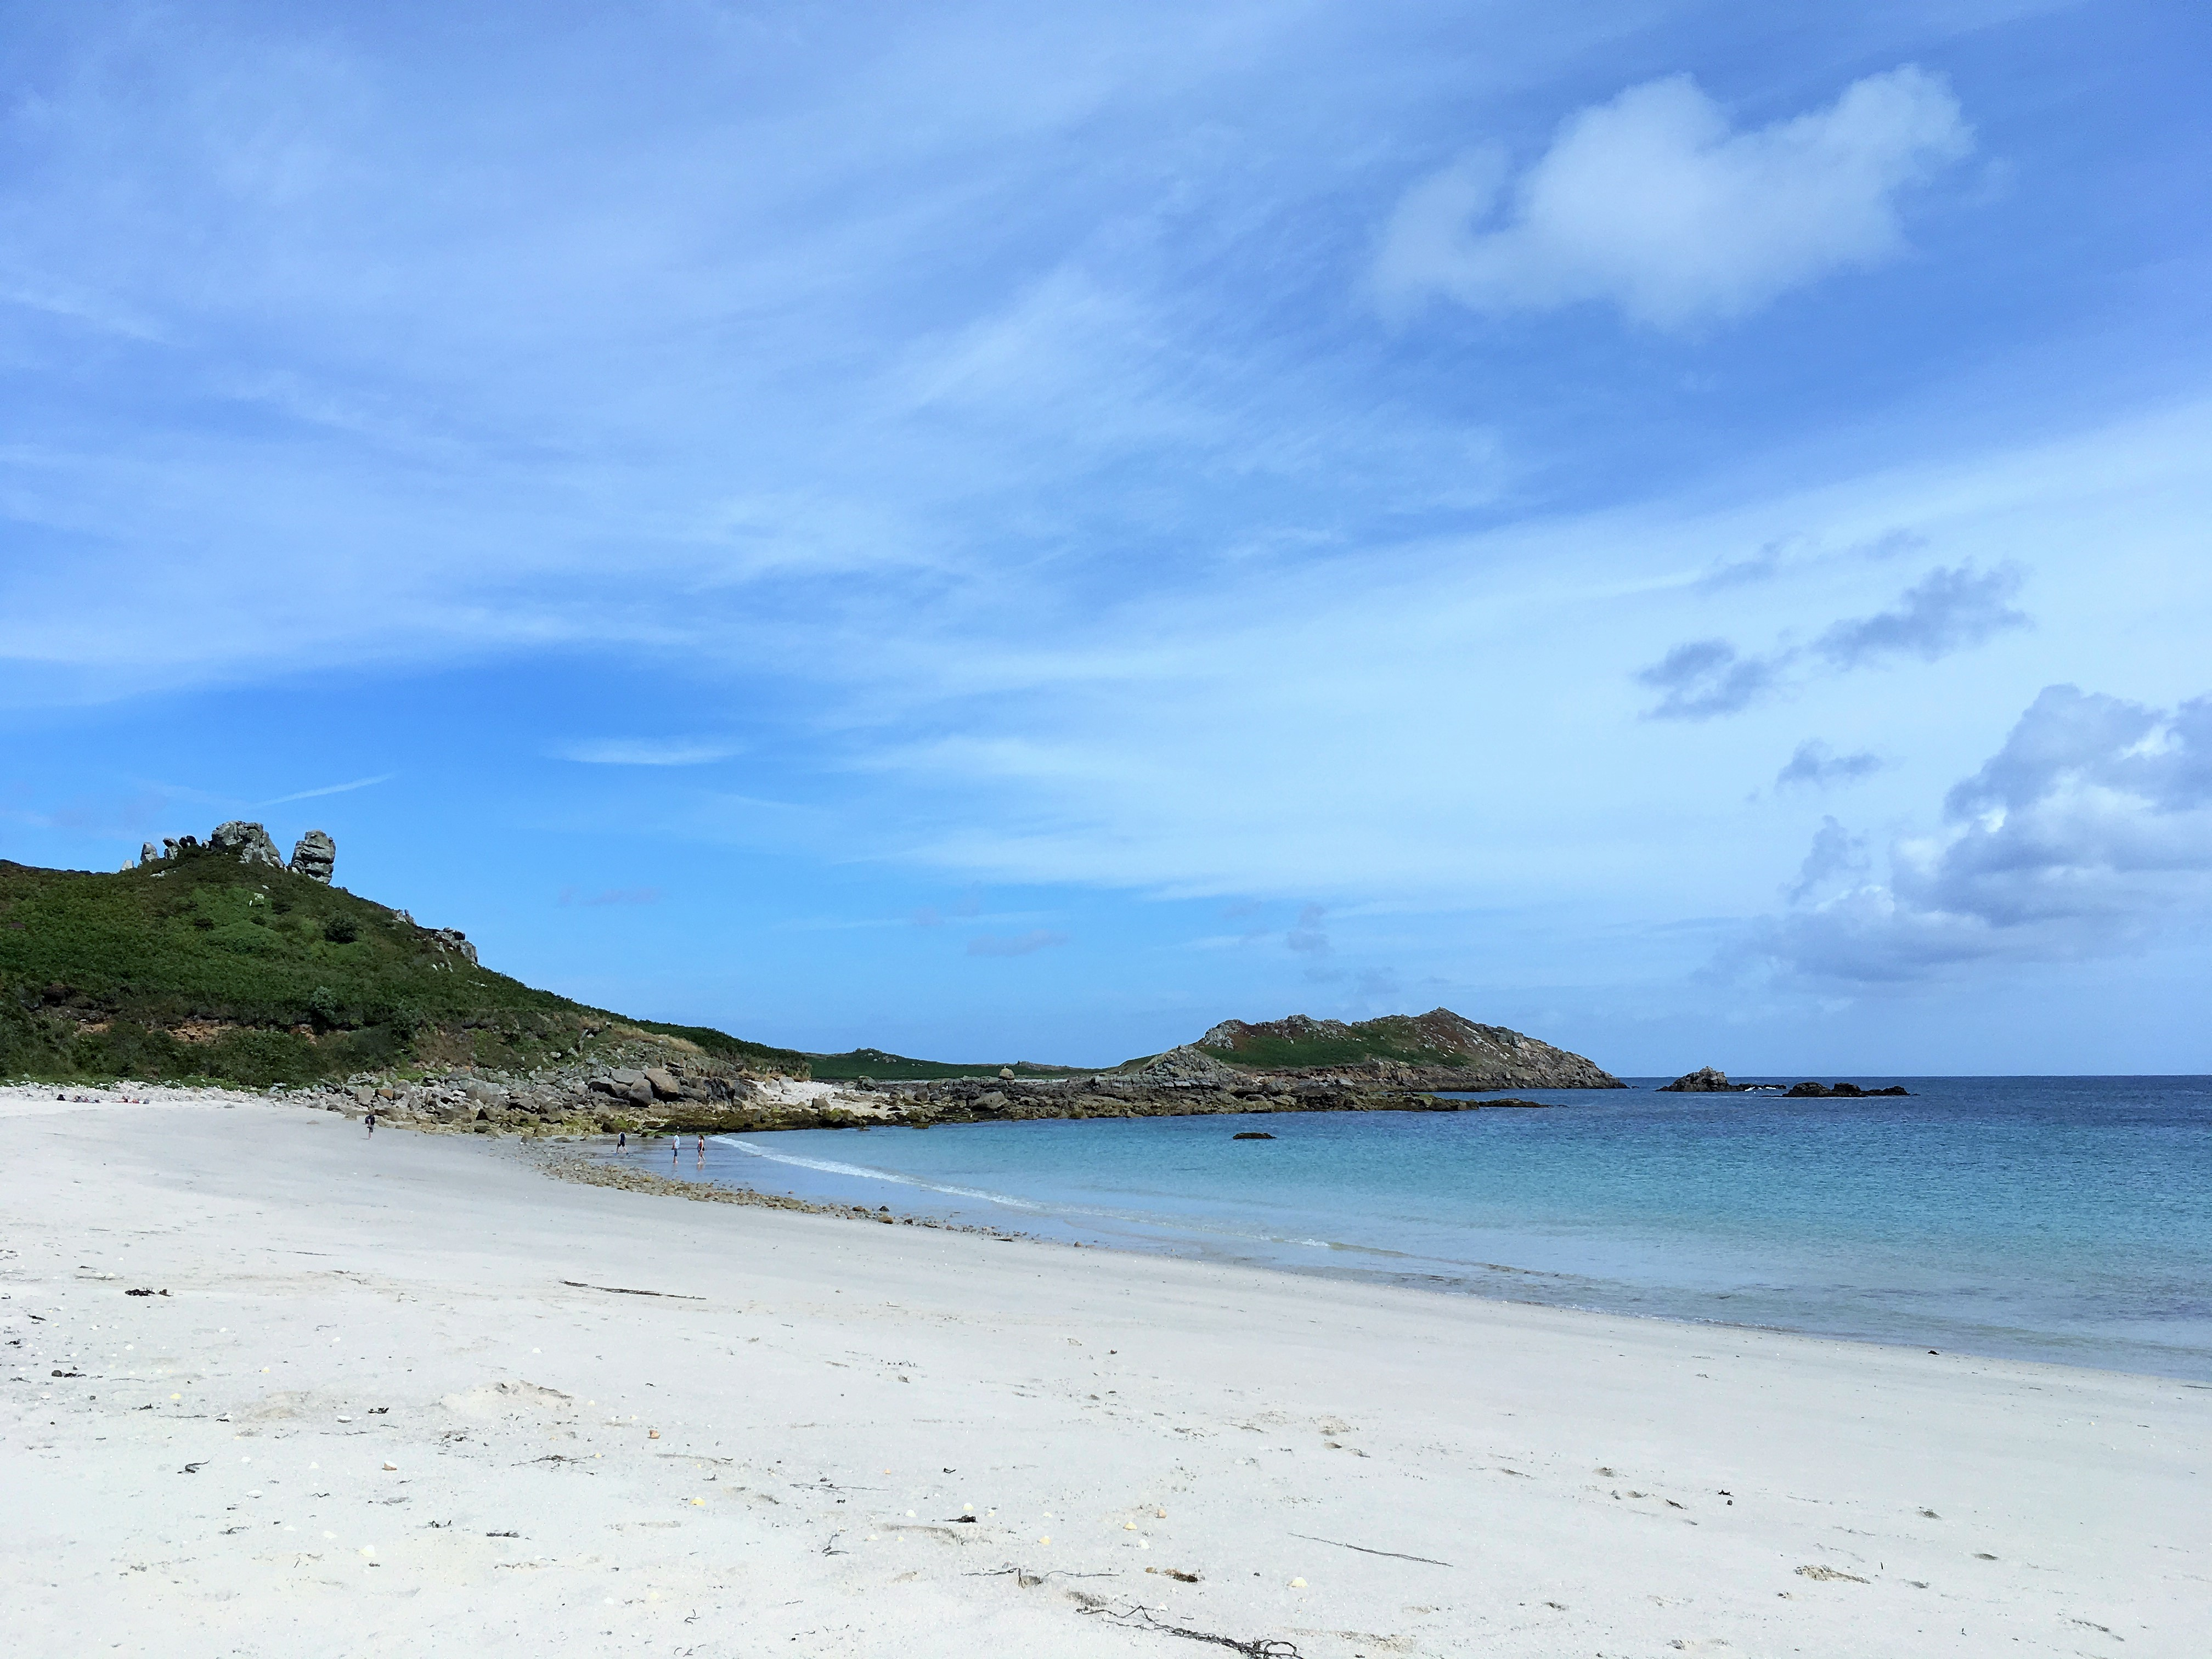 Grand Bay, Isles of Scilly, Smudged Postcard blog